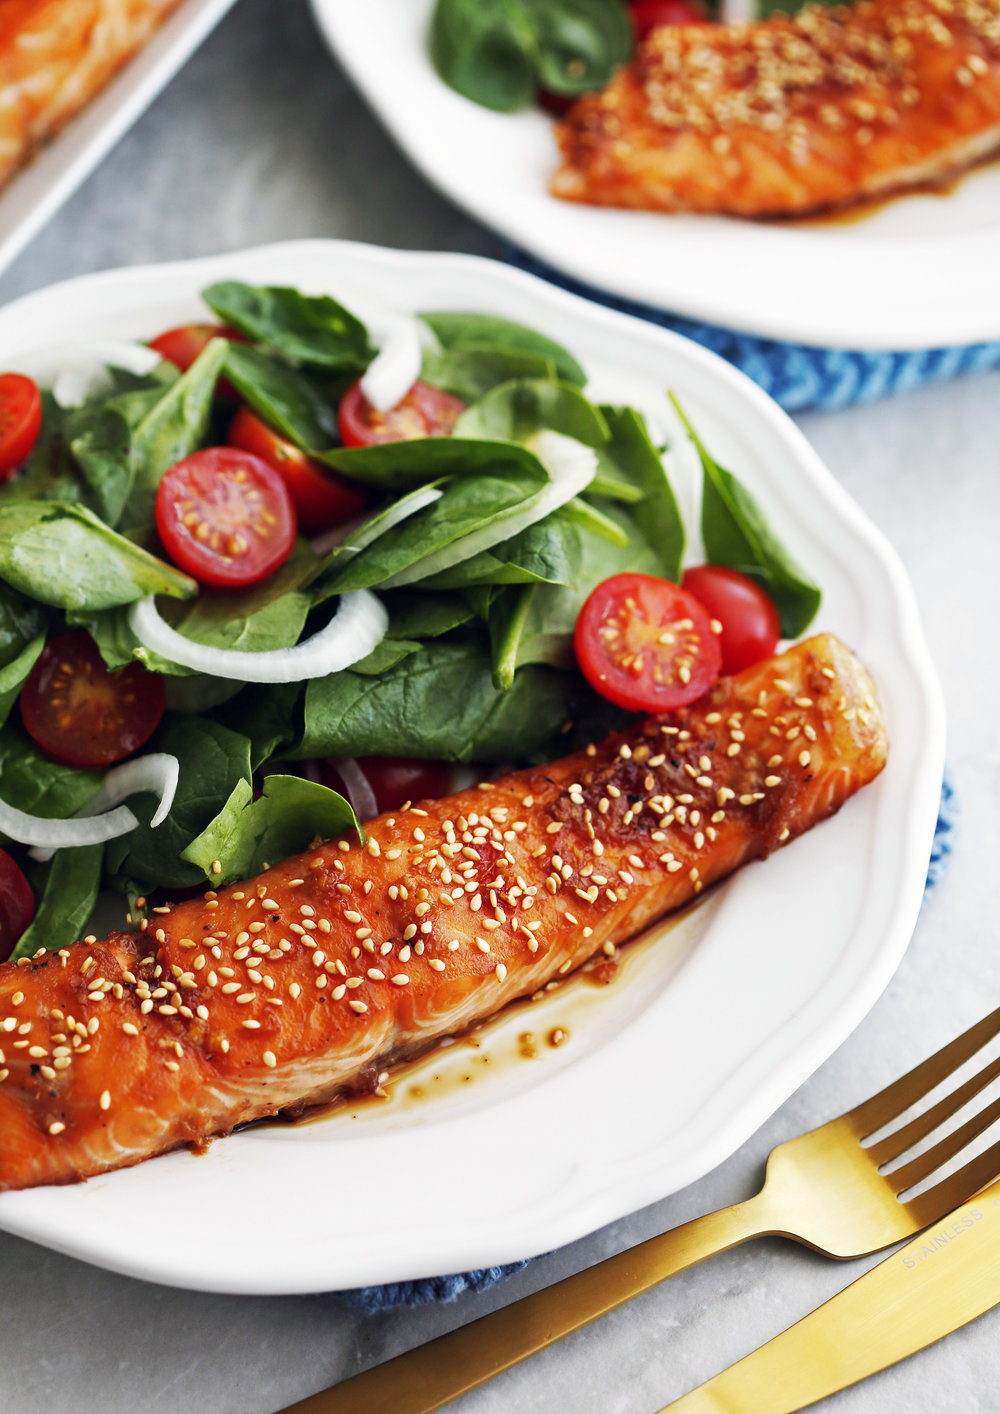 Maple-Soy Baked Salmon with green spinach salad on a white plate with a fork and knife beside it.